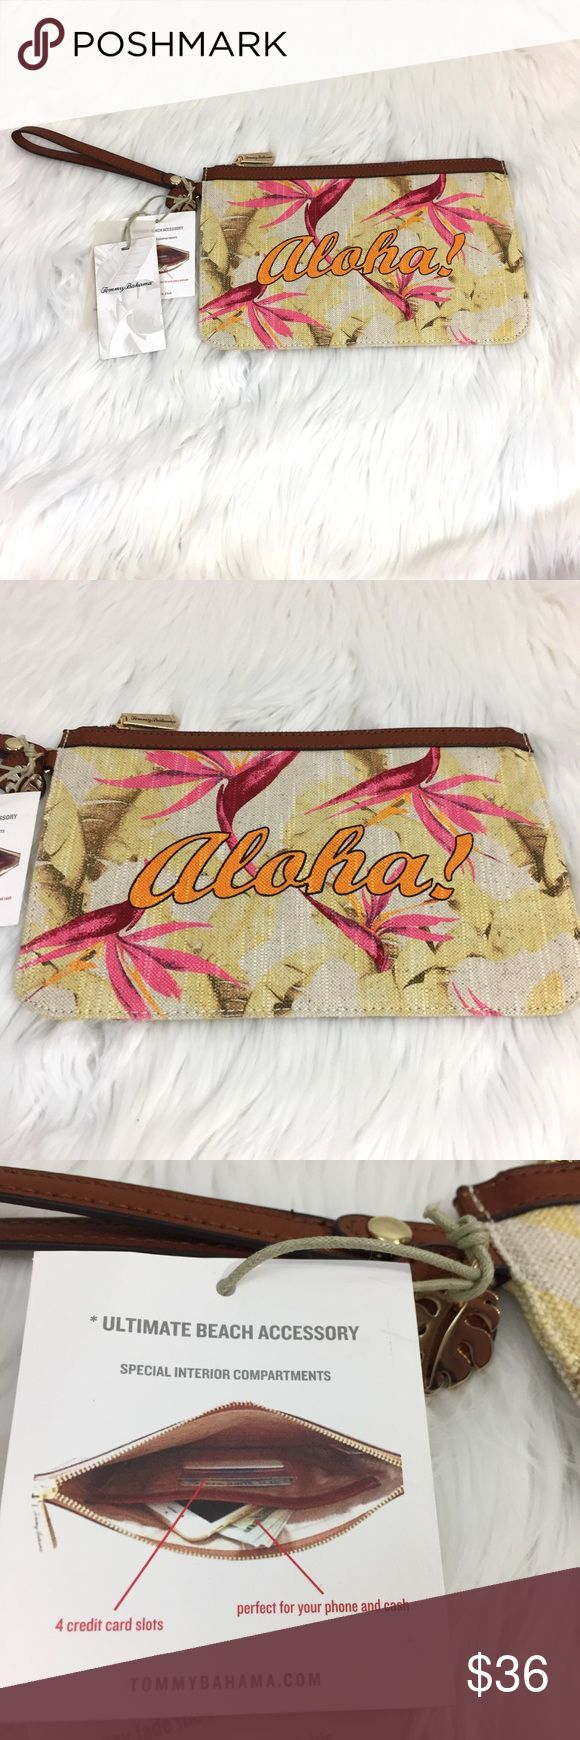 "Tommy Bahama Boca Chica Wristlet in Aloha NWT Tommy Bahama Boca Chica Beach wristlet in Aloha! Measures approximately 10.75"" x 6.75"". Great for travel to keep essentials in your beach bag or purse. Tropical and fun!  A must-have if you are planning travel to Hawaii. Tommy Bahama Bags Clutches & Wristlets"